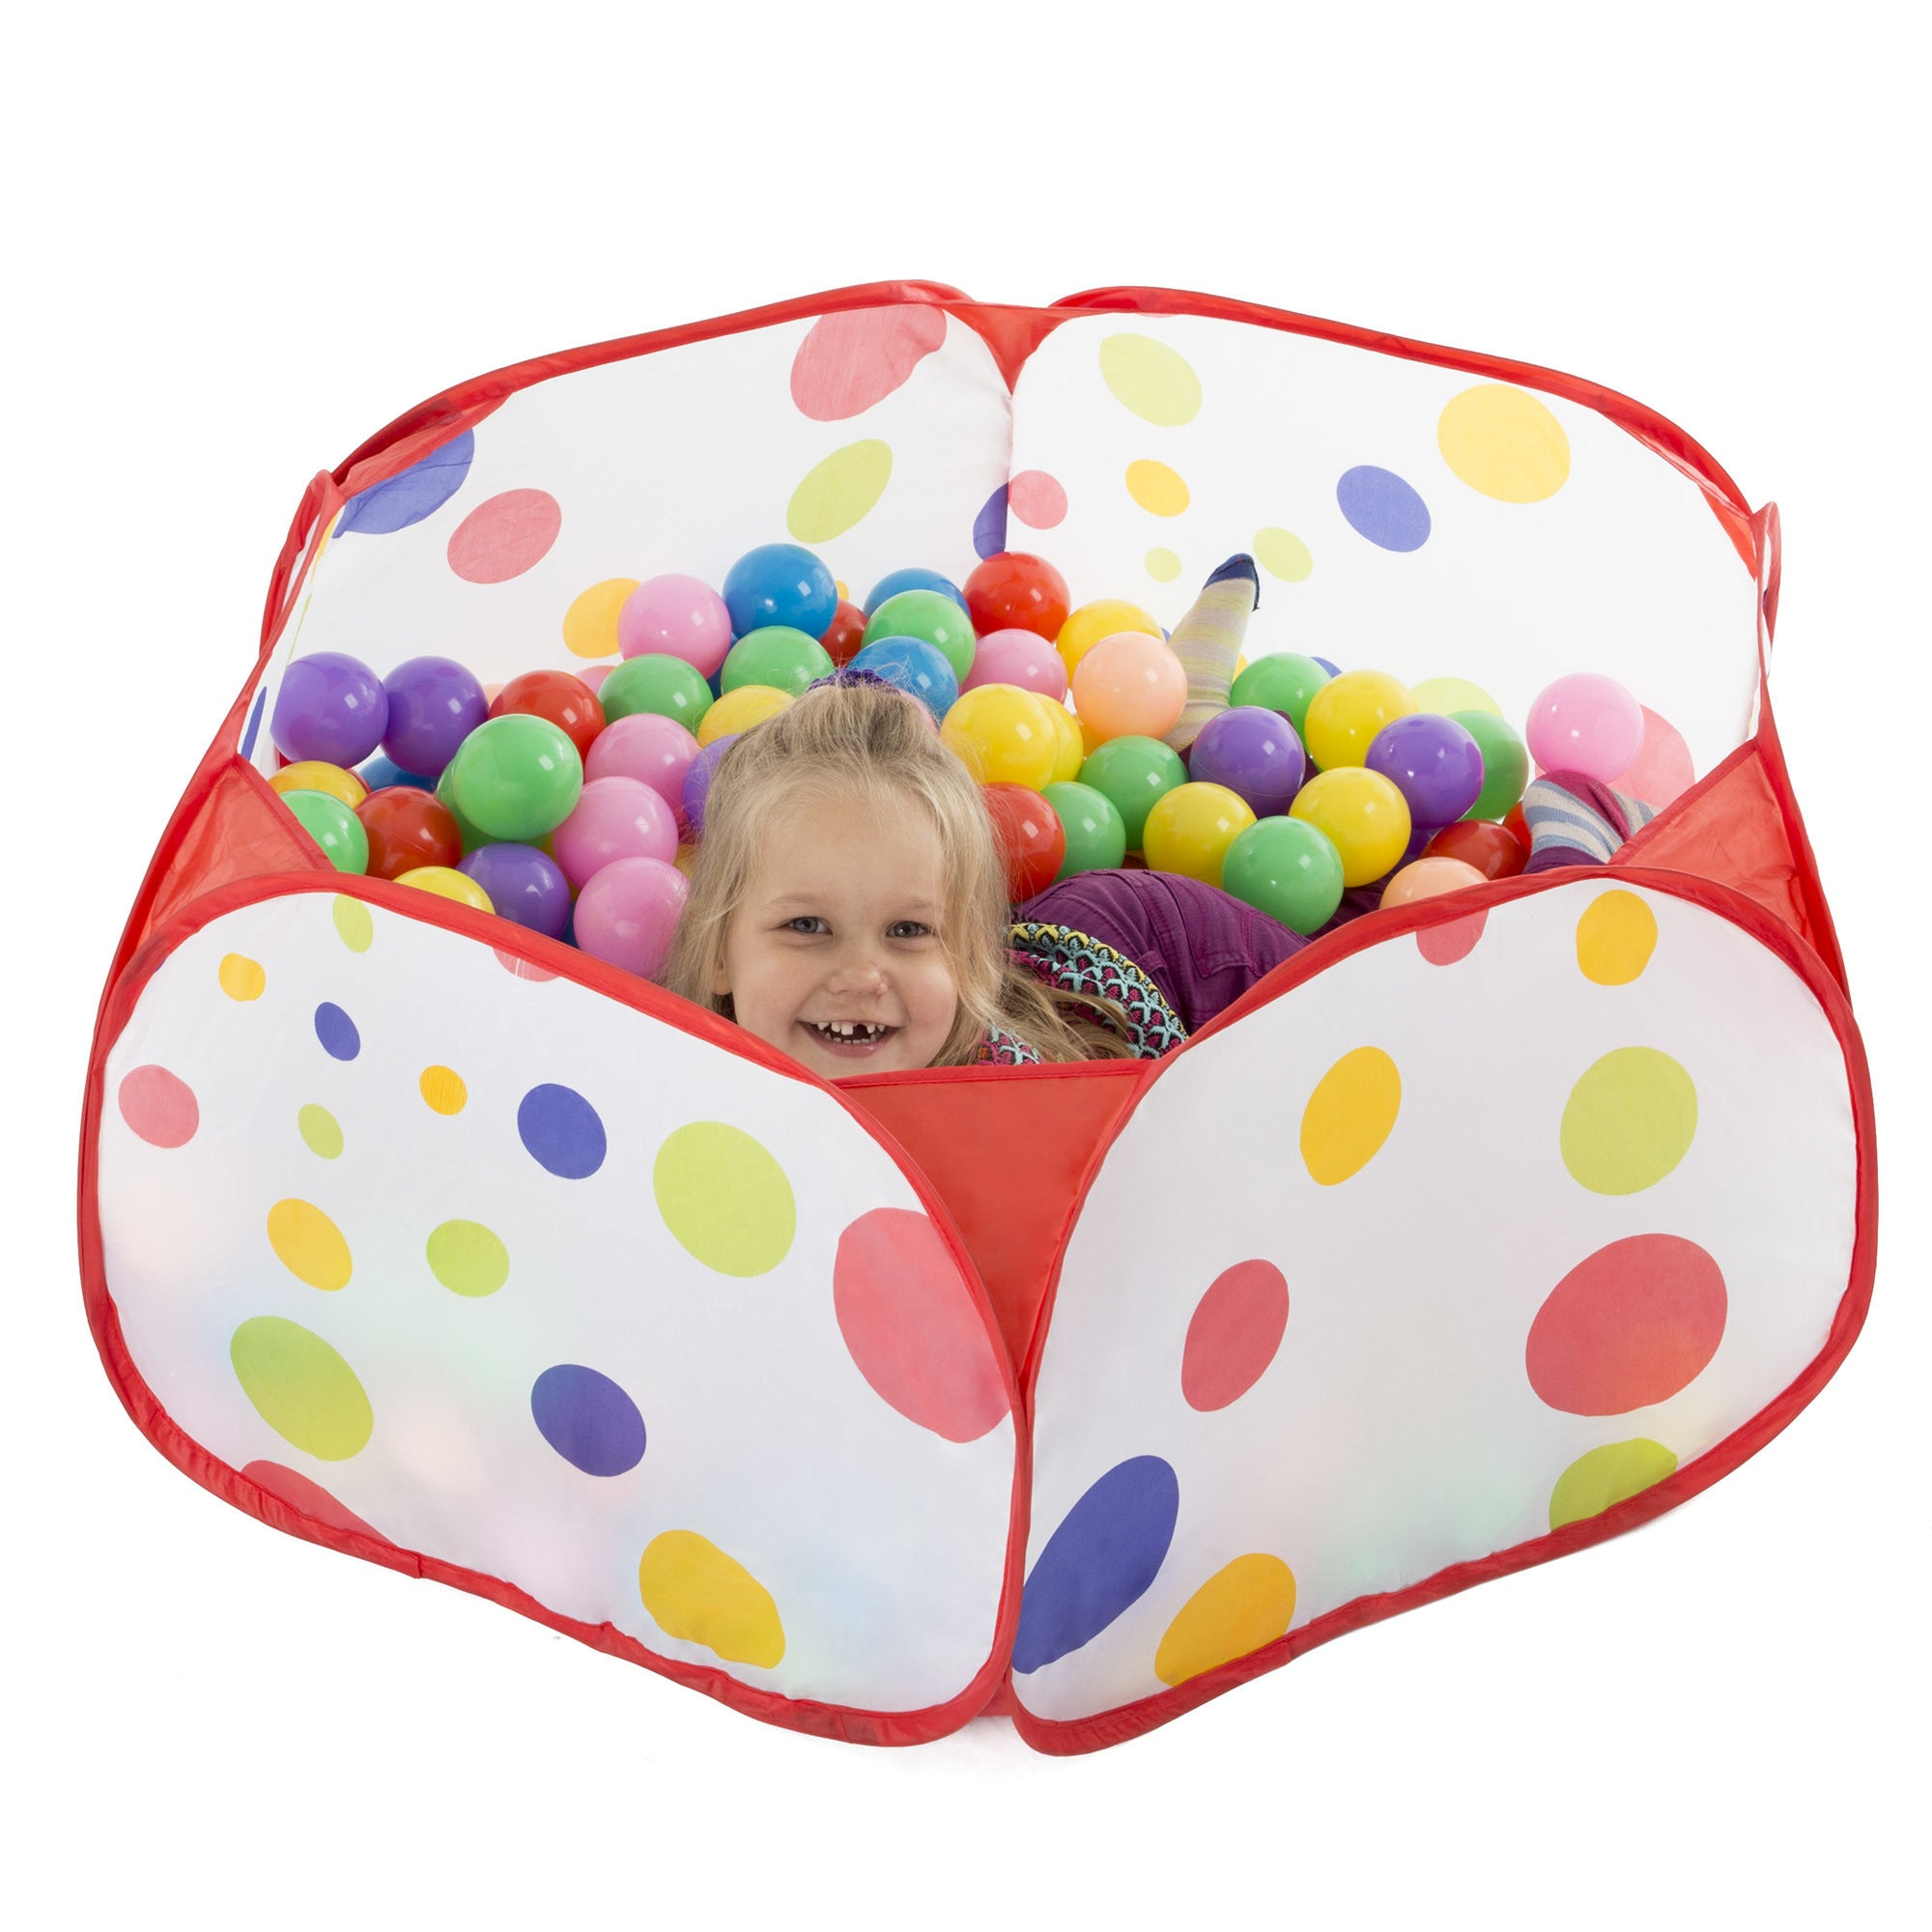 Kids Pop-up Six-sided Ball Pit Tent with 200 Colorful and Soft Crush-proof Non-toxic Plastic Balls - Free Shipping Today - Overstock - 16402995  sc 1 st  Overstock.com & Shop Hey! Play! Kids Pop-up Six-sided Ball Pit Tent with 200 ...